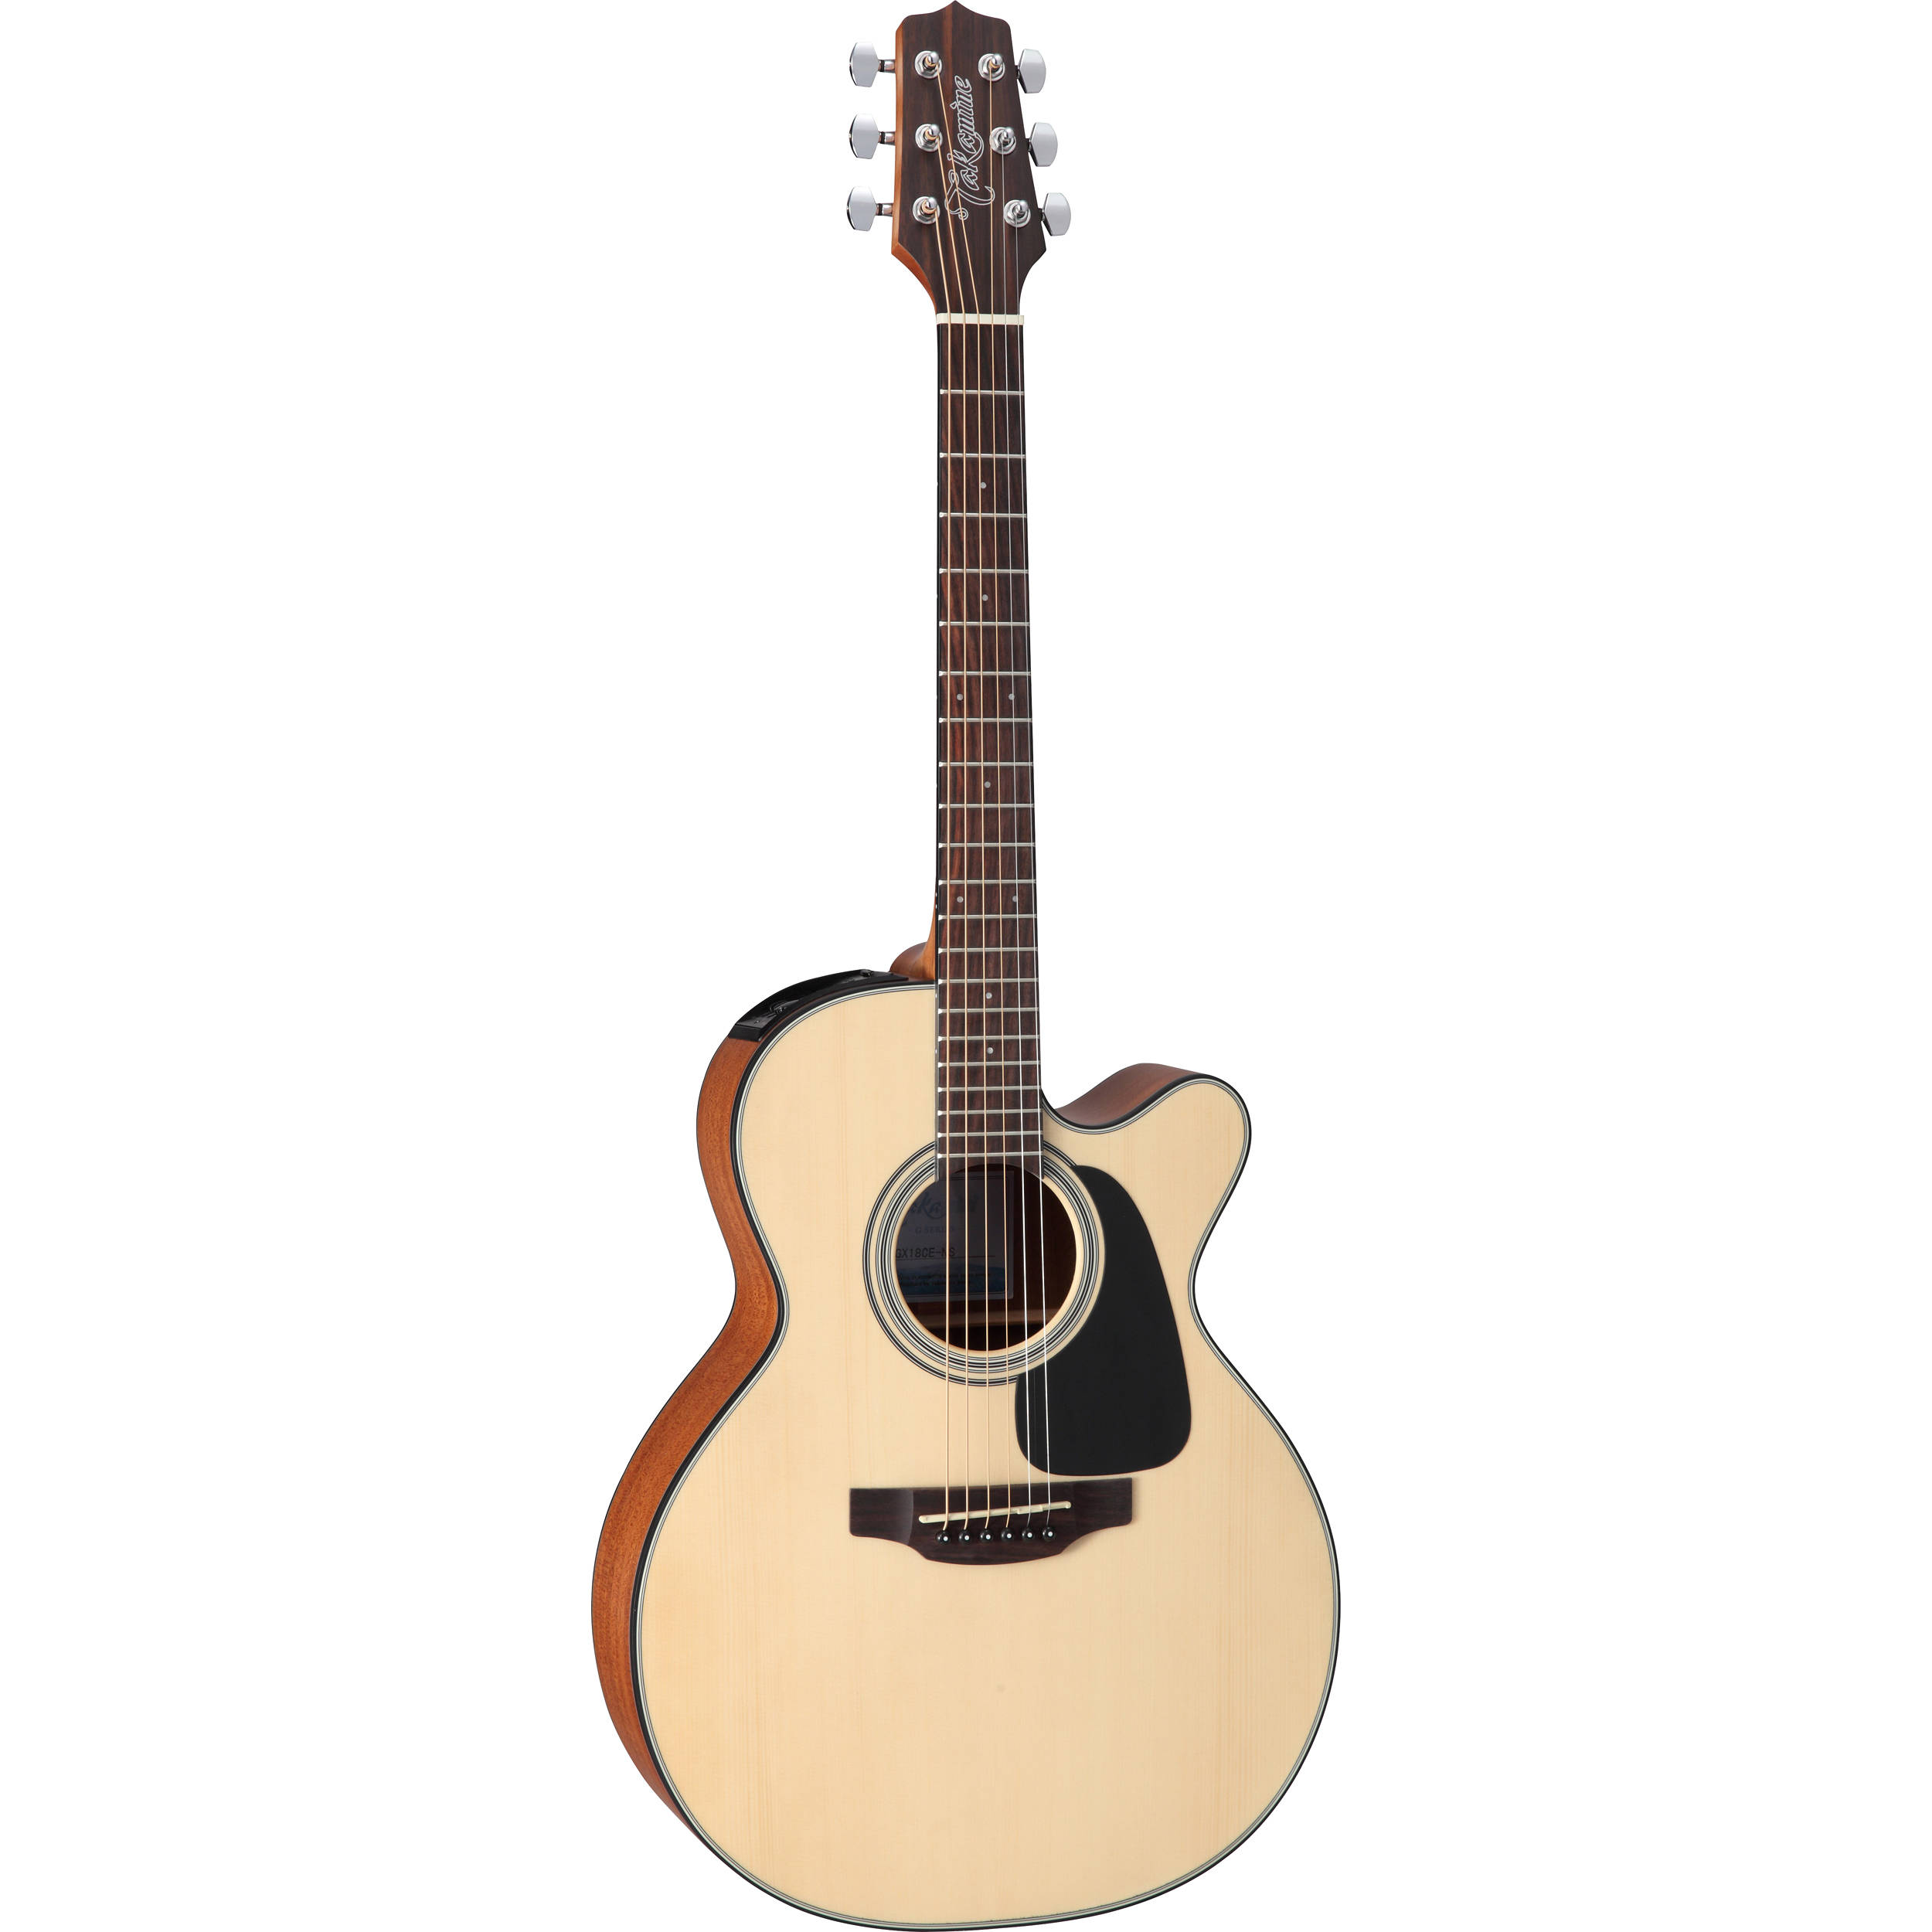 takamine_gx18ce_ns_g_series_taka_mini_1219502__1521706696_417